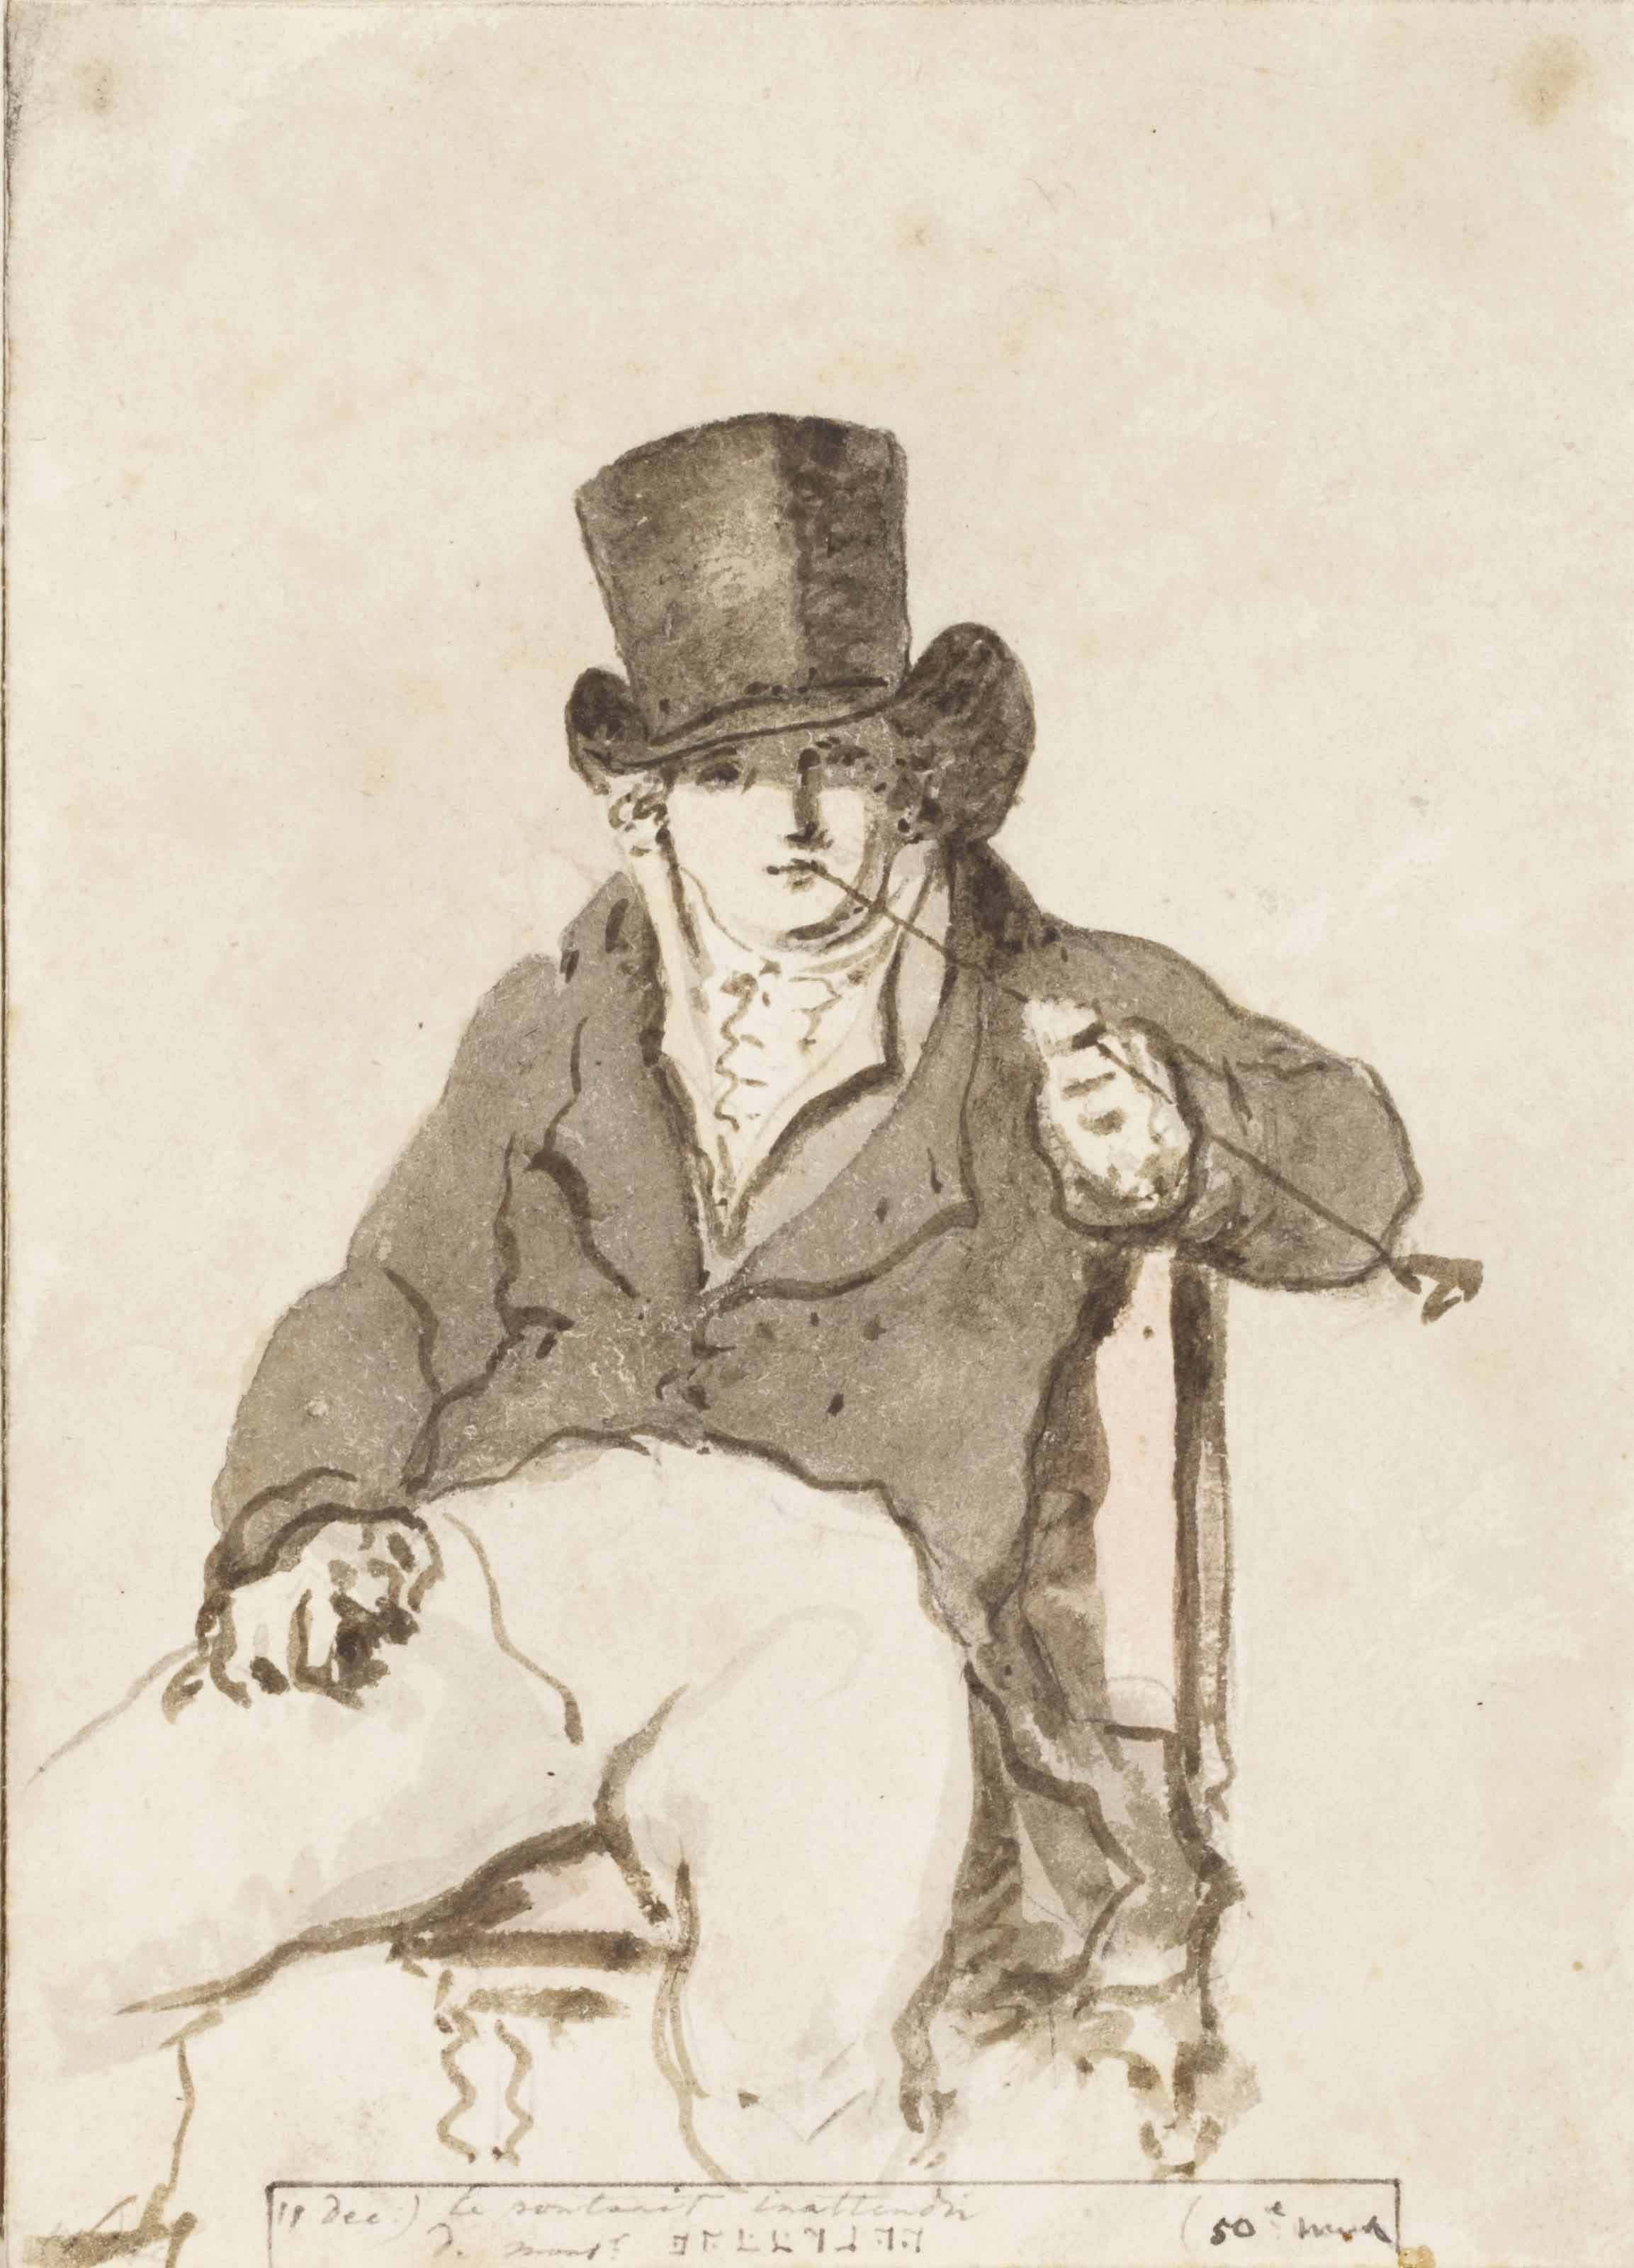 A page from the artist's illustrated diary: Portrait of Friedrich August Hoffman in a top hat, seated, smoking a pipe